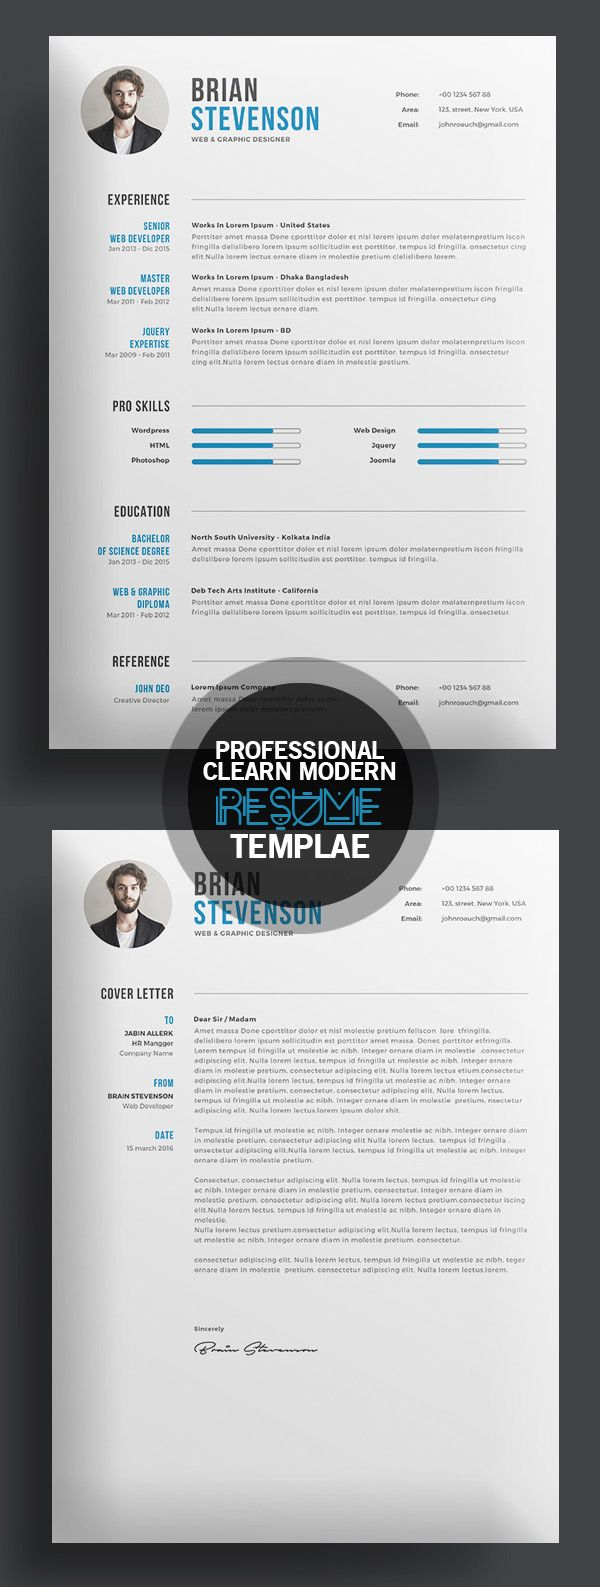 16 best CV Resumés images on Pinterest | Page layout, Resume ...